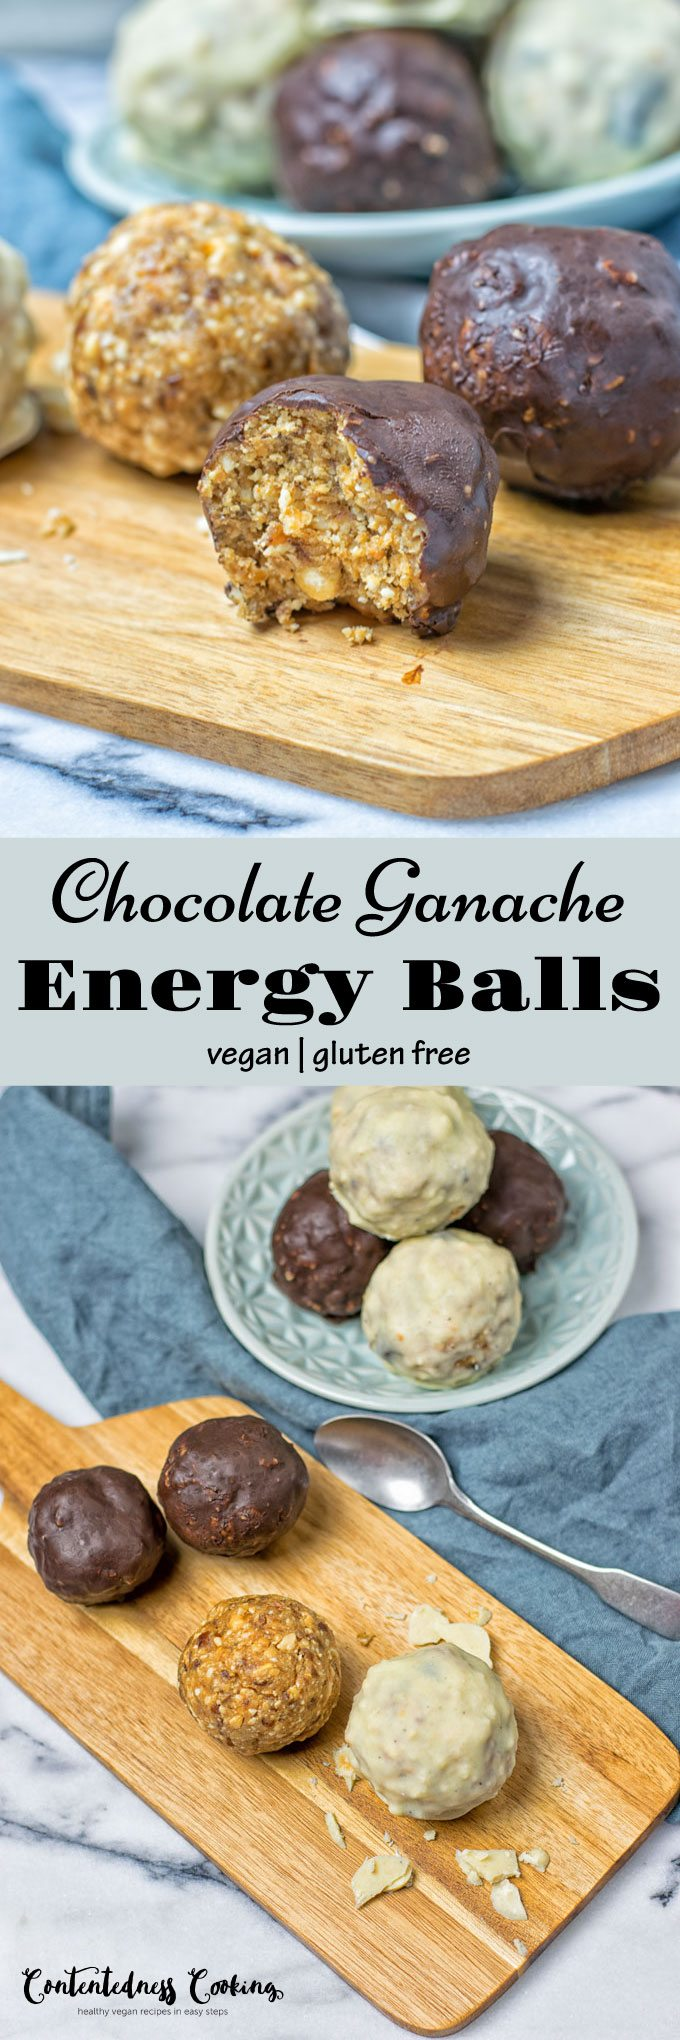 Collage of two pictures of Chocolate Ganache Energy Balls with recipe title text.